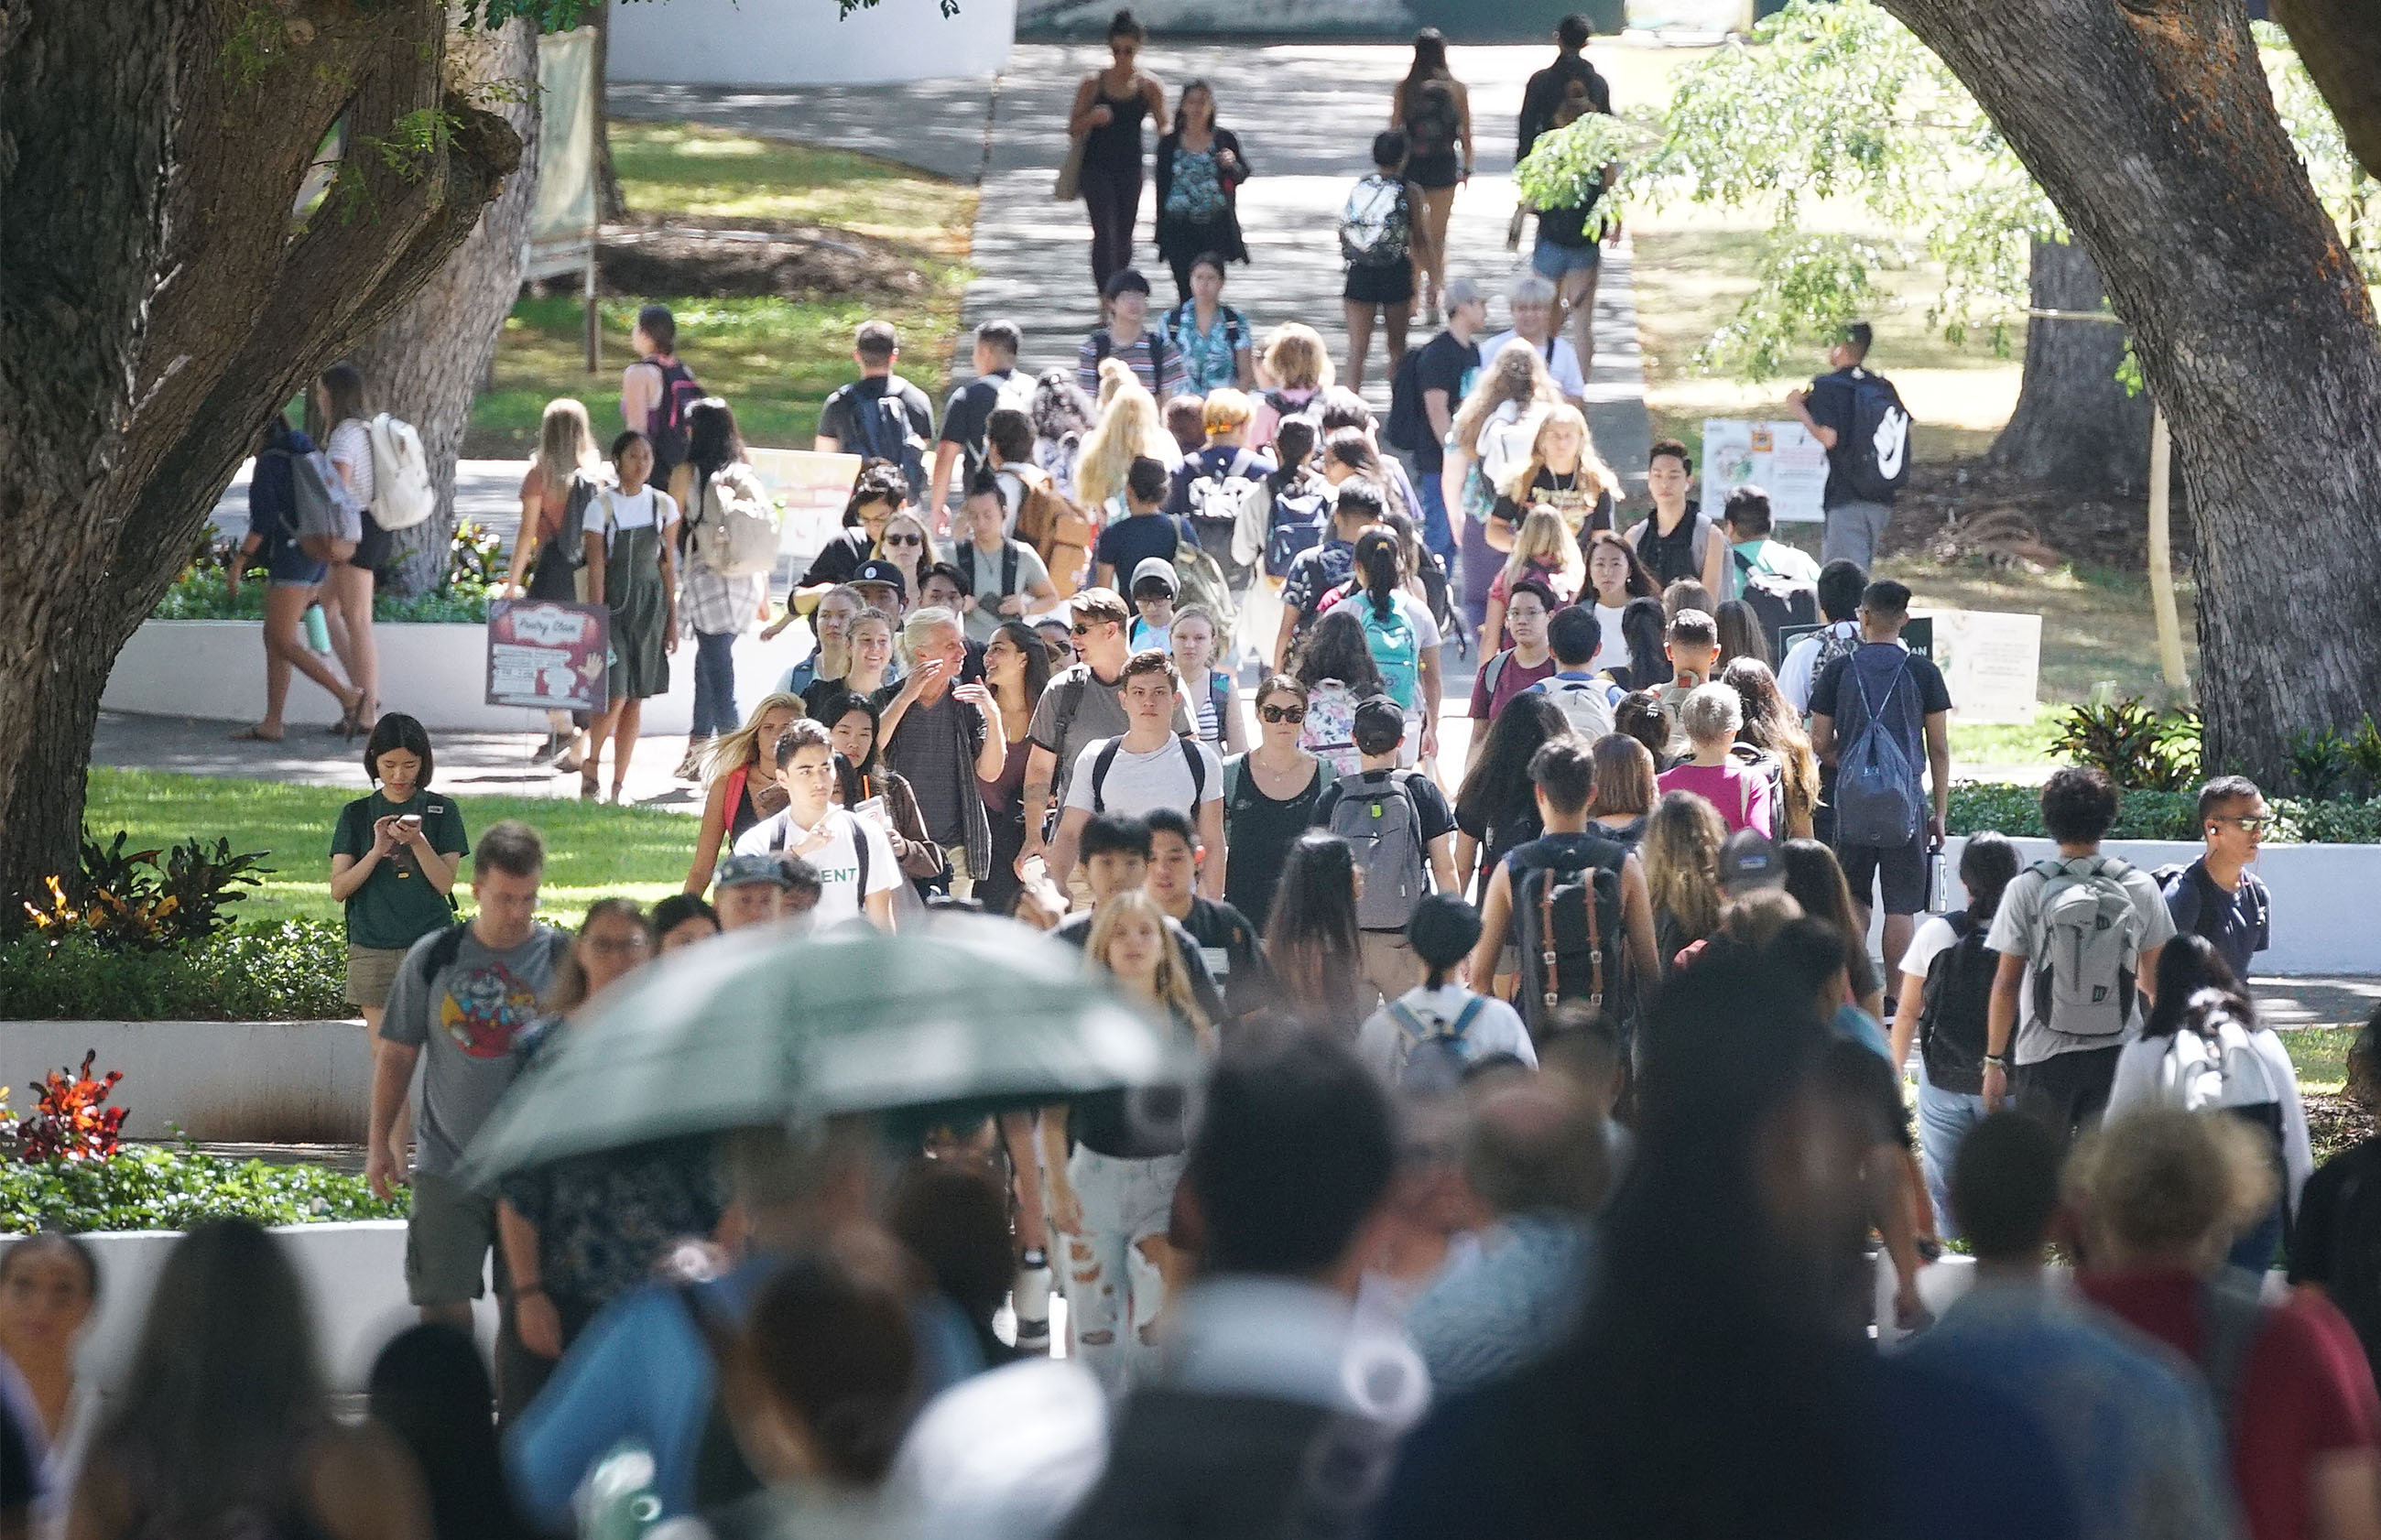 University of Hawaii at Manoa campus with students walking along the 'Mall' during change of classes.